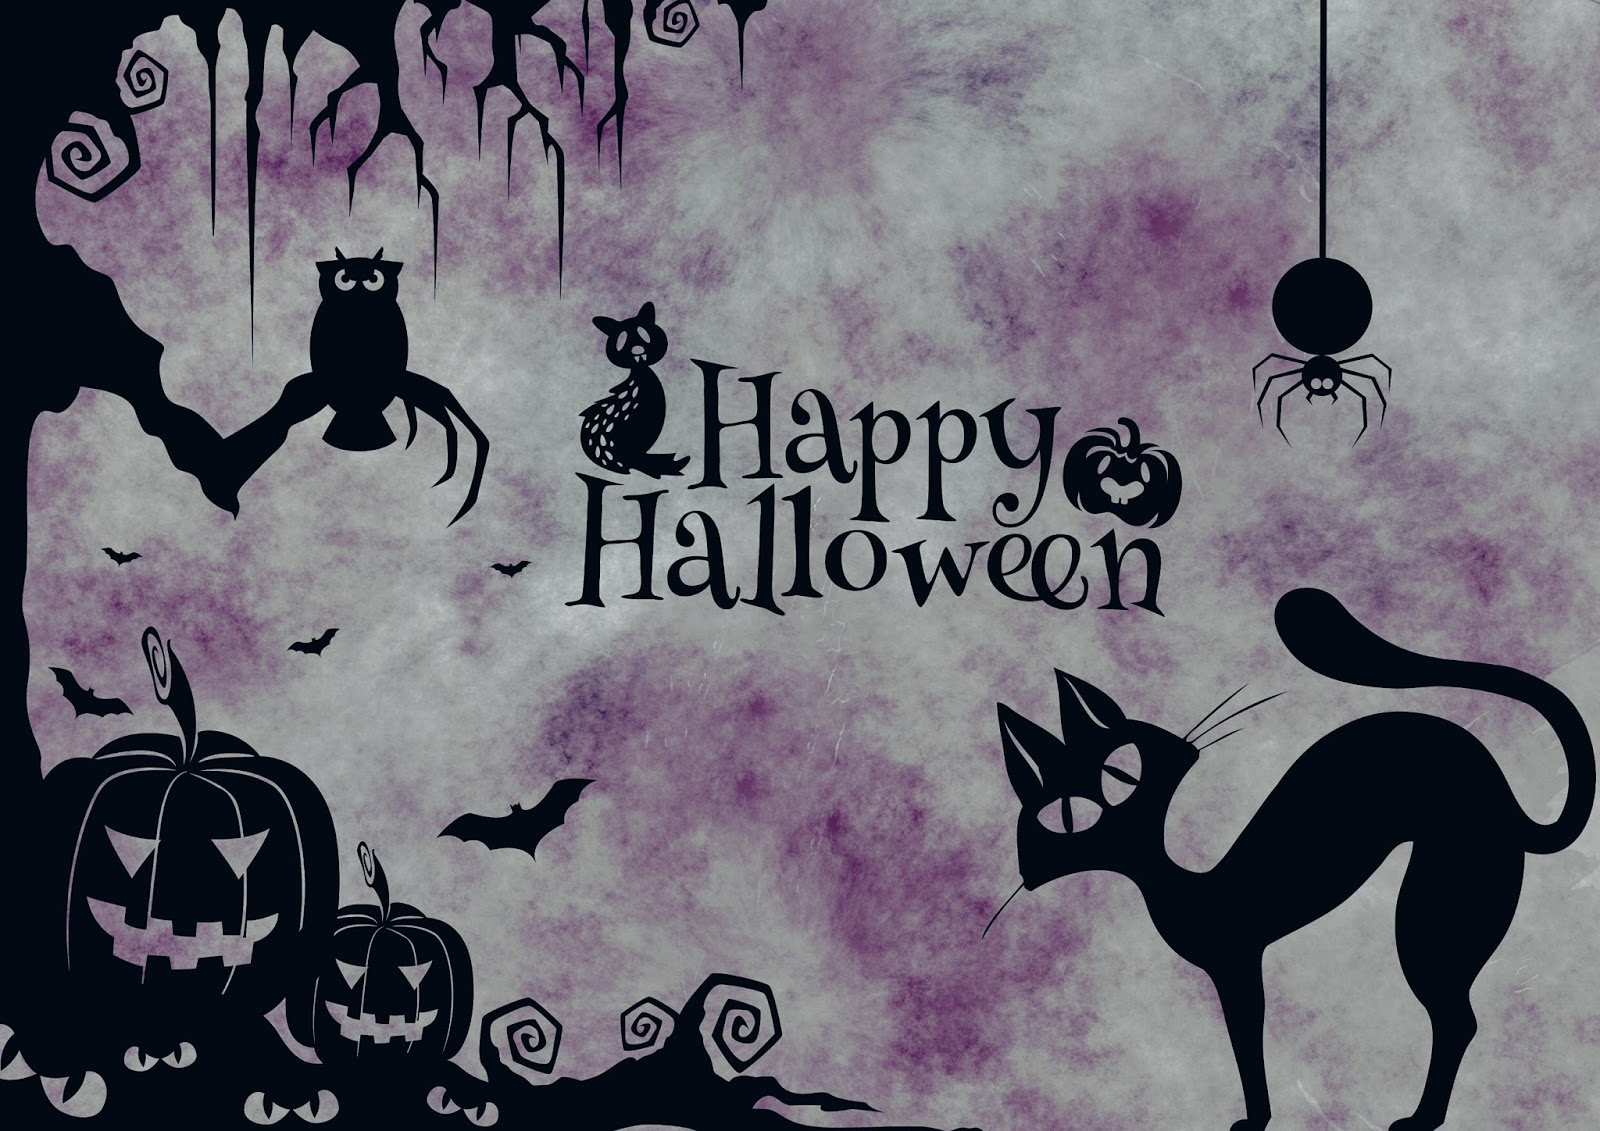 Browse-Happy-Halloween-HD-for-Facebook-and-WhatsApp-Download-HD-halloween-images-and-happ-wallpaper-wp3803470